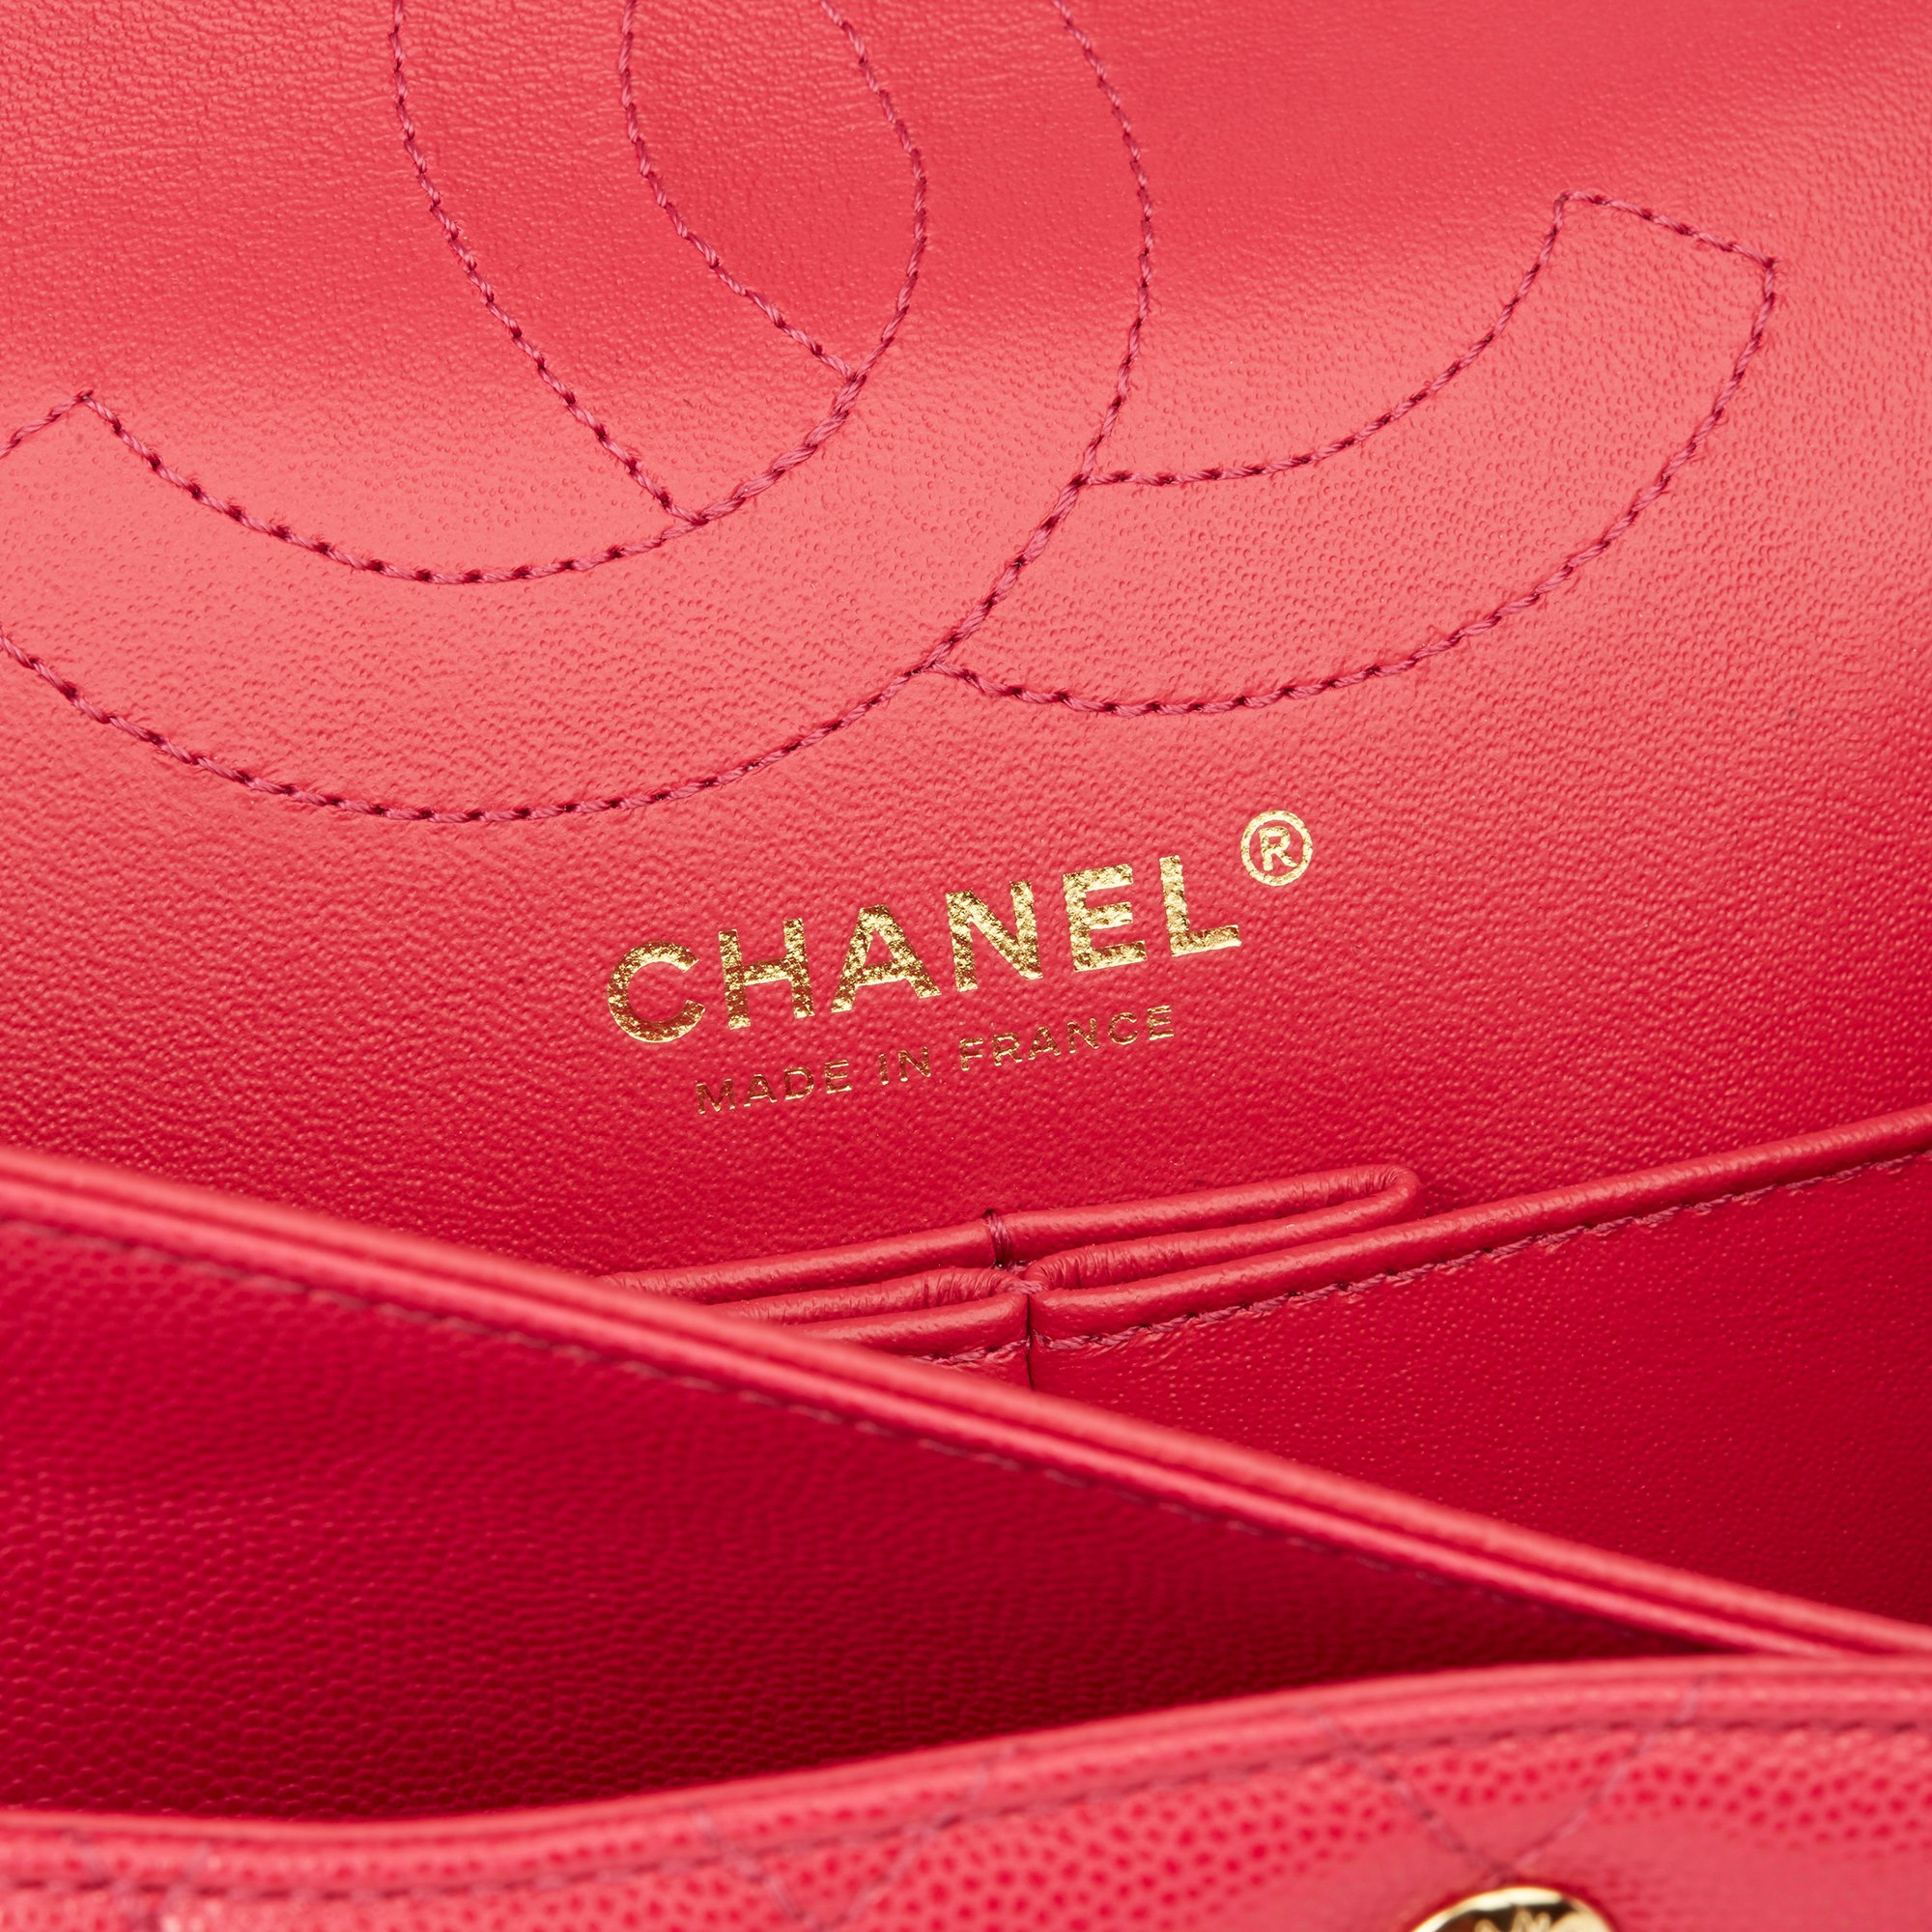 Chanel Magenta Chevron Quilted Caviar Leather 2.55 Reissue Double Flap Bag